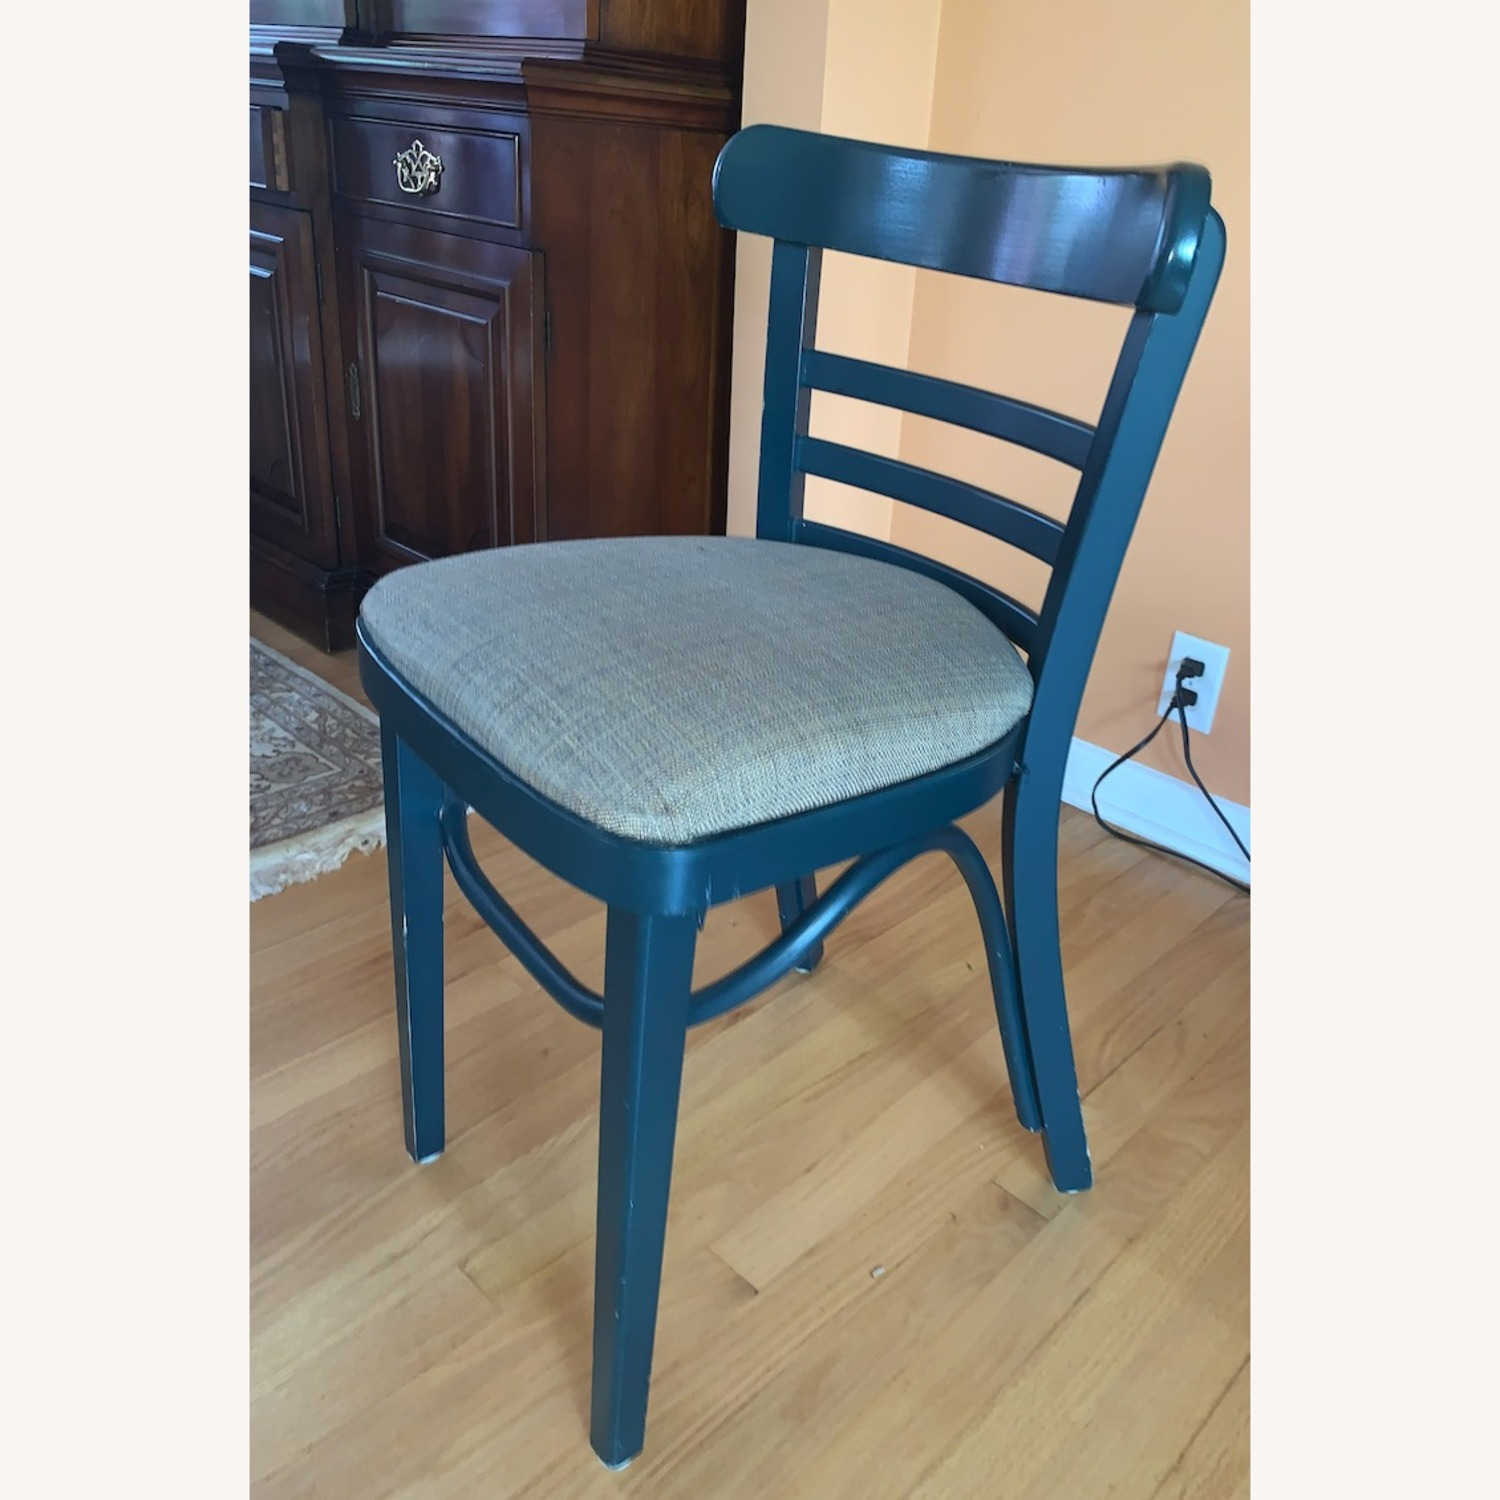 Two Side Chairs - image-2